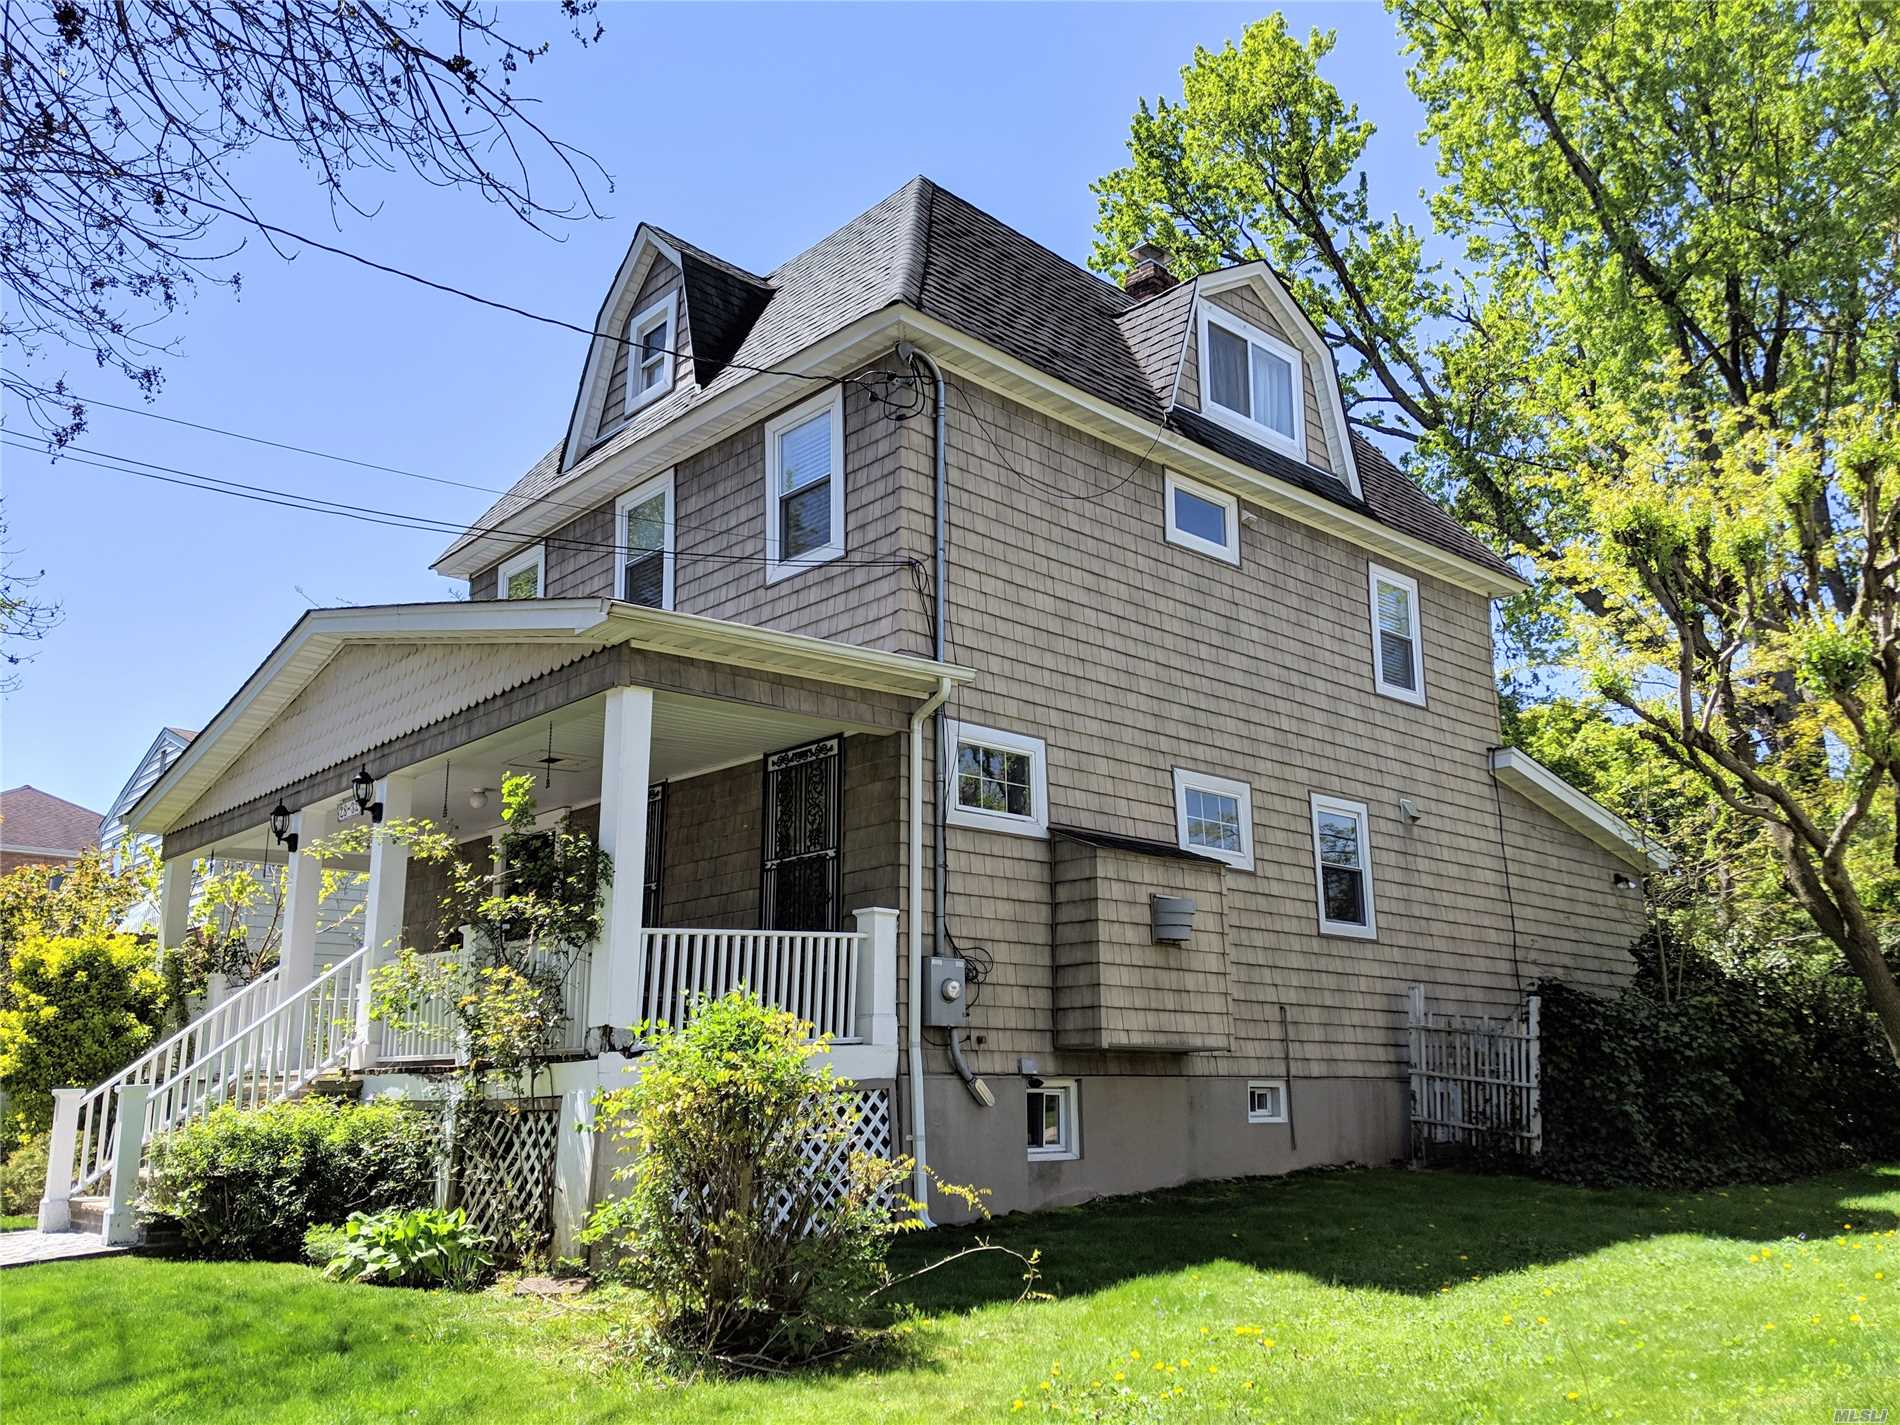 Spacious 4 bedrooms Dutch Colonial with 2 Car Garages in the heart of Bayside. Convenient location near Bell Blvd and minutes away from Bay Terrace Shopping Center - with supermarket, restaurants, movie theater, and etc. Bus Q13 to Flushing- Main St.